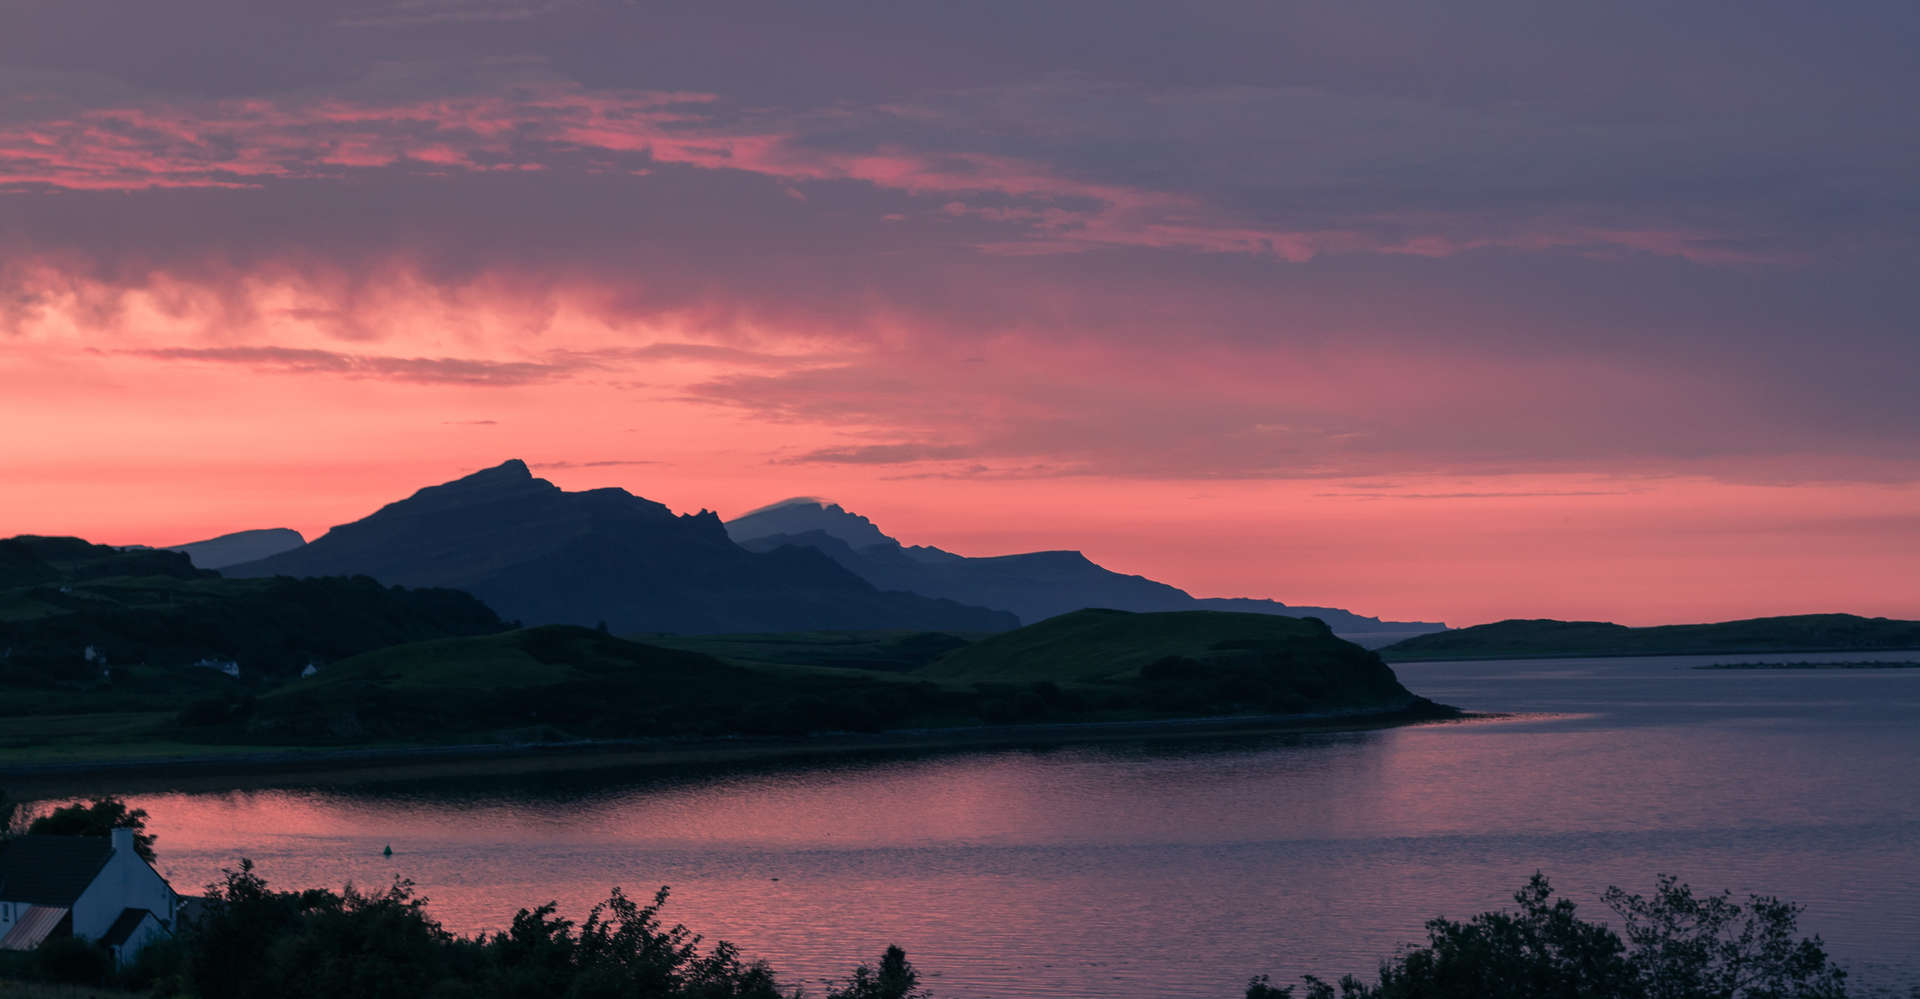 mountains of the isle of skye in scotland at sunset with red sky